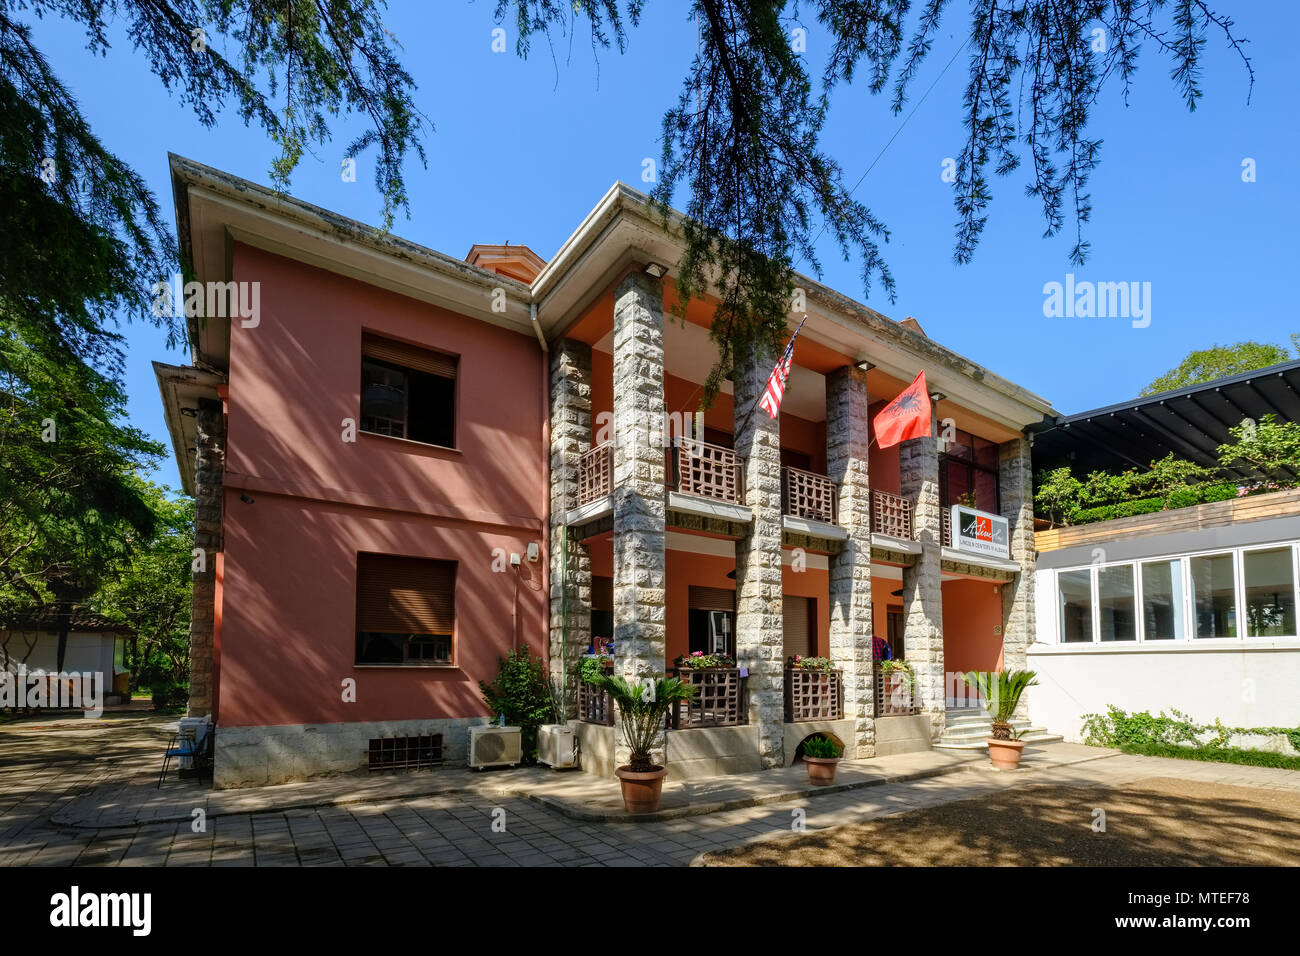 Lincoln Center, Blloku Quarter, Tirana, Albania - Stock Image